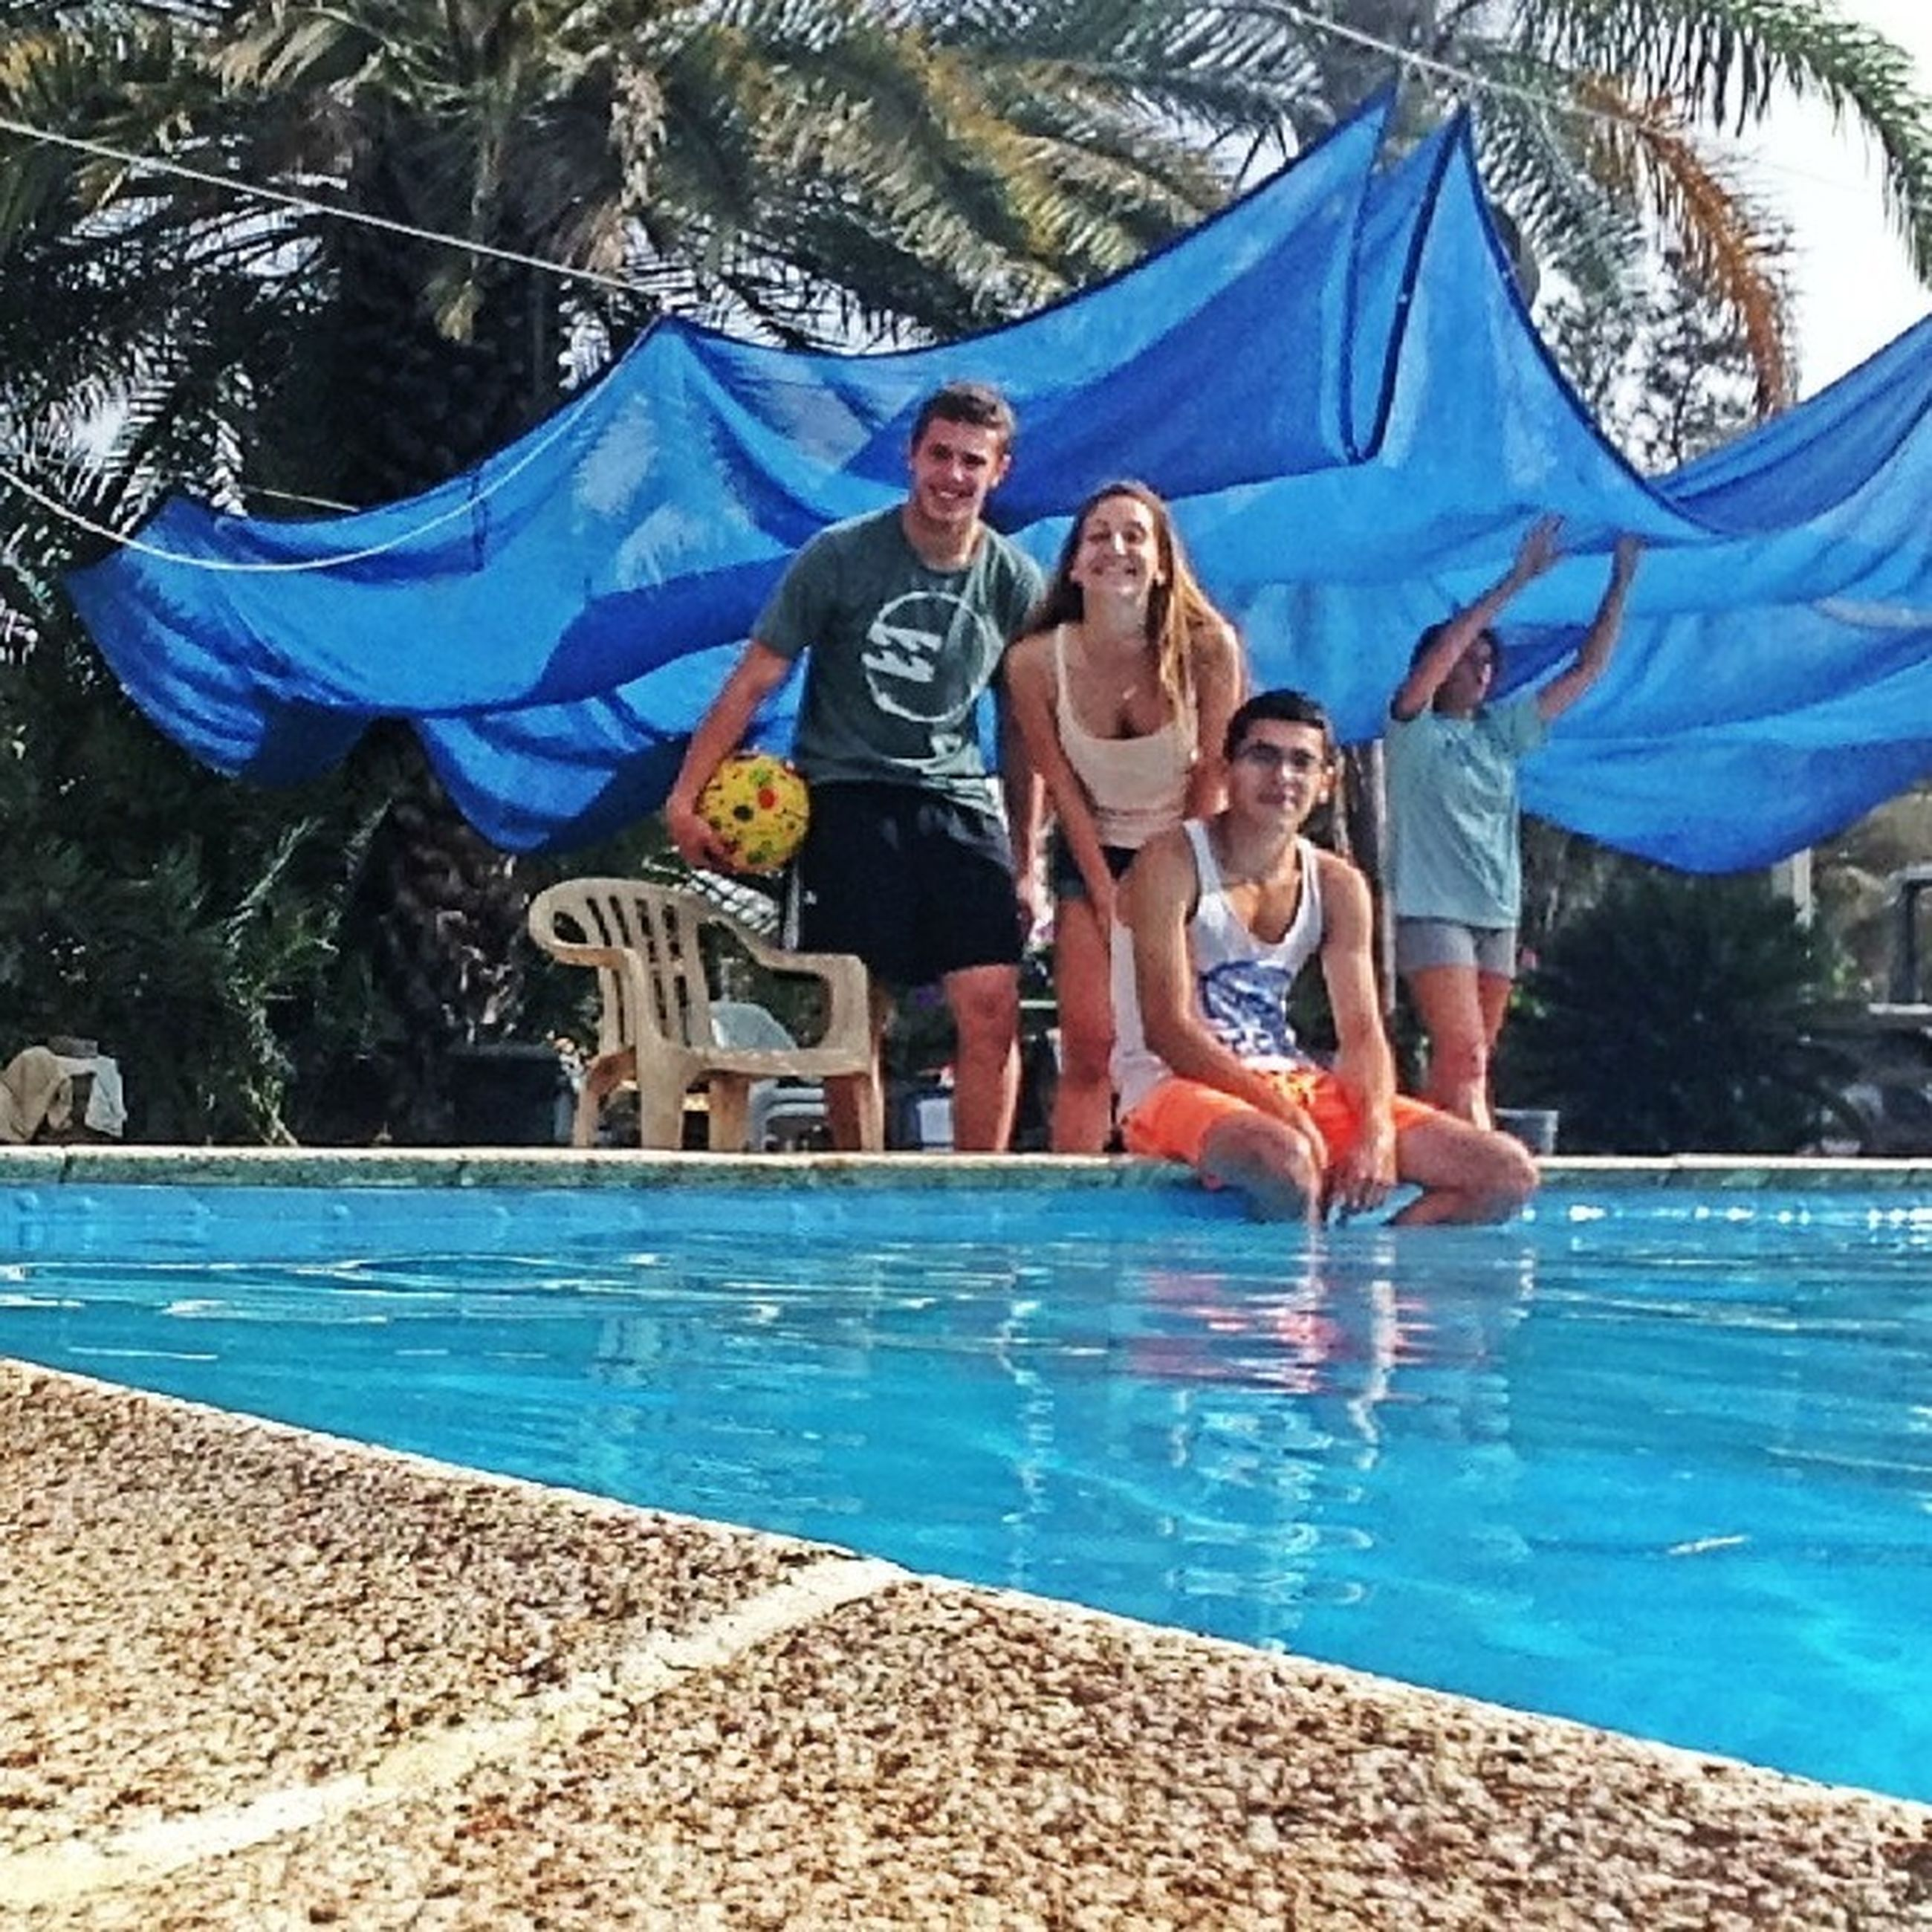 lifestyles, leisure activity, water, swimming pool, enjoyment, blue, vacations, fun, casual clothing, young adult, full length, relaxation, sitting, person, happiness, togetherness, men